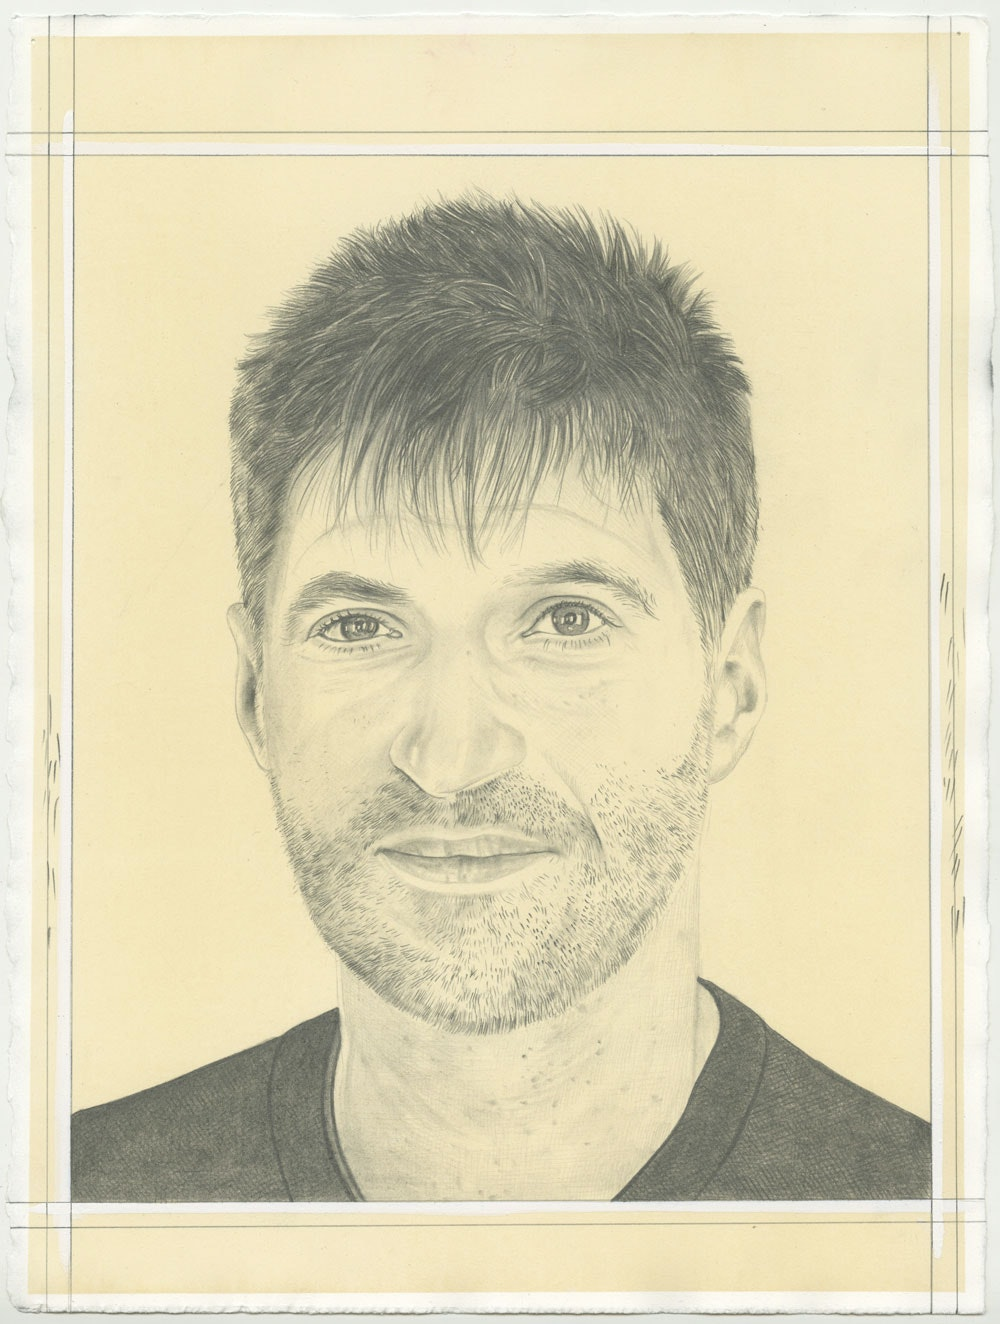 Portrait of James Prosek, pencil on paper by Phong H. Bui.